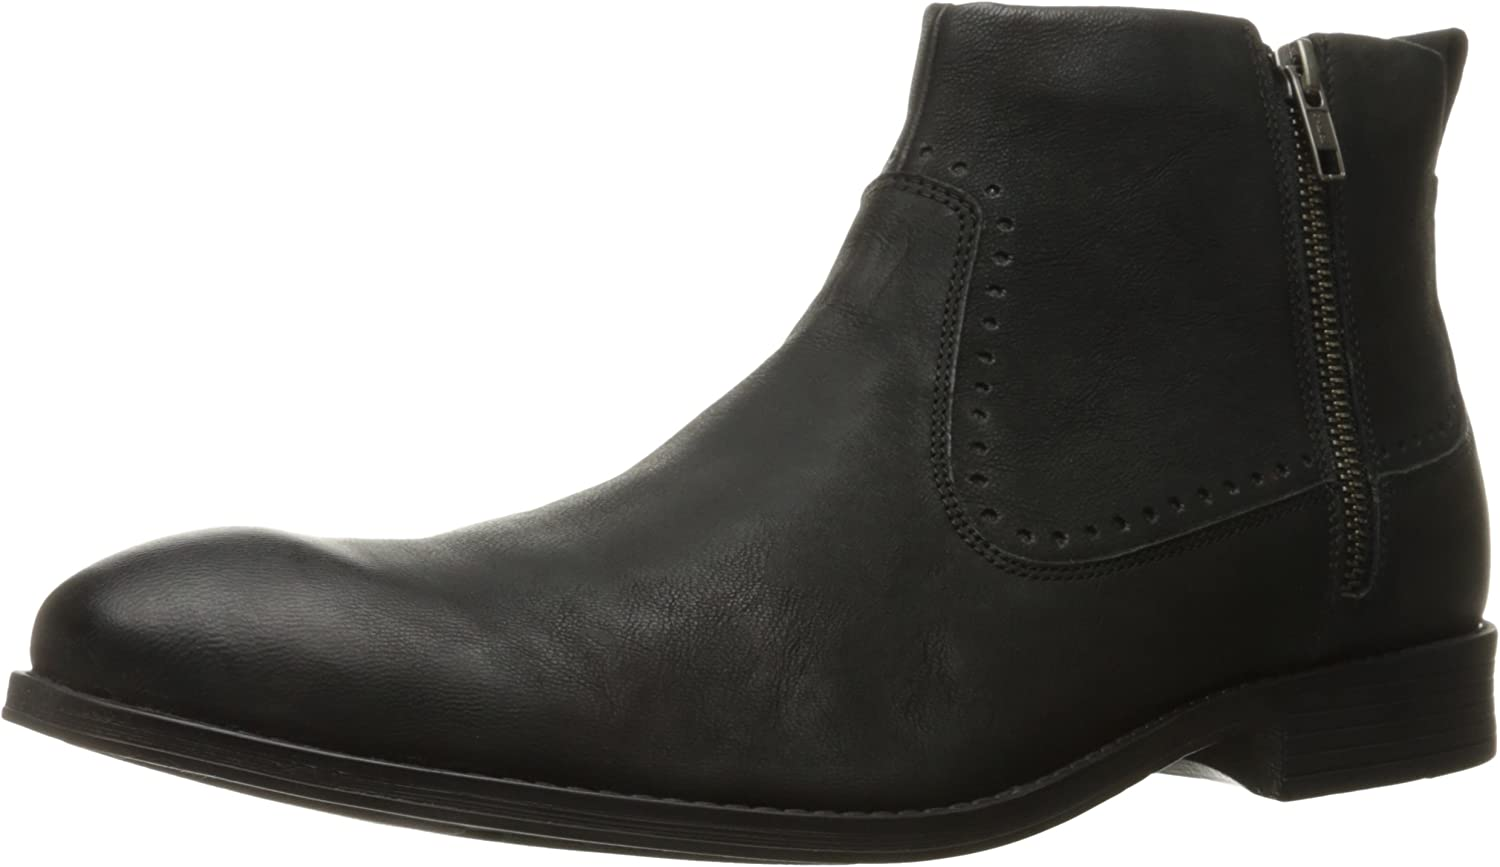 STACY ADAMS Men's Remington Plain Toe Zipper Chelsea Boot, Black, 9 M US B005BHI1YO  | Starke Hitze- und Abnutzungsbeständigkeit